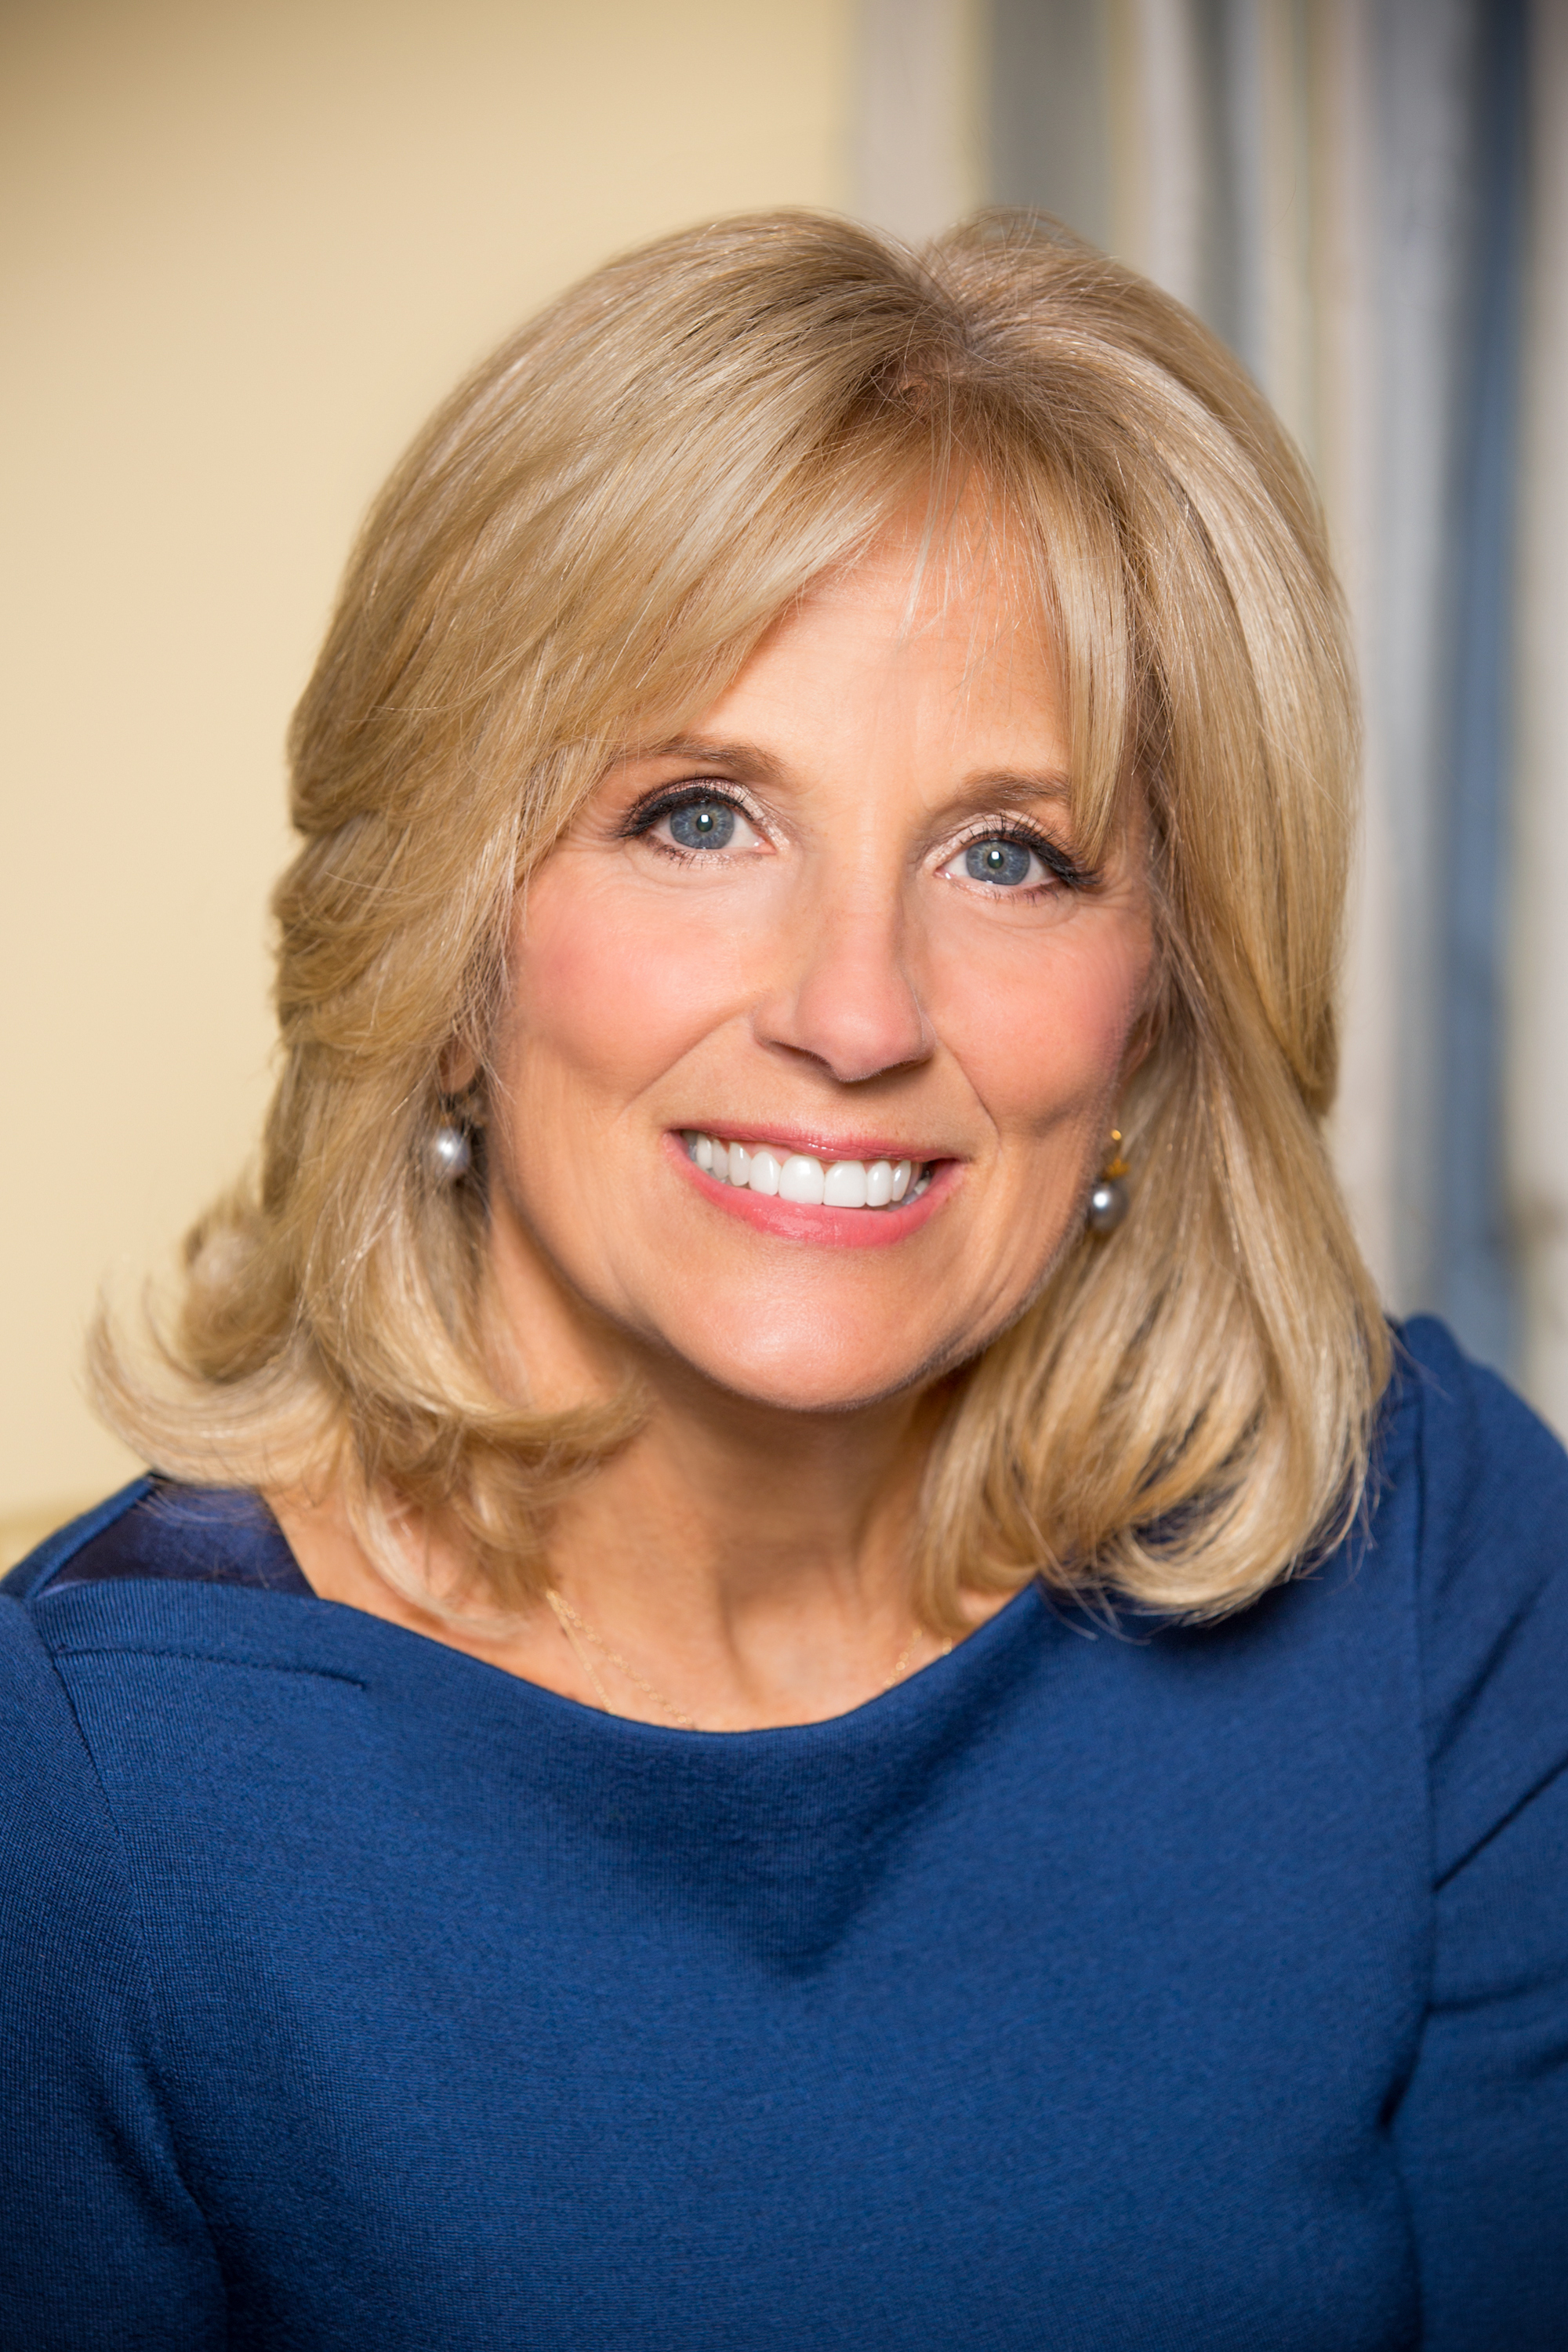 Jill Biden coming to CT to raise money for husband's campaign